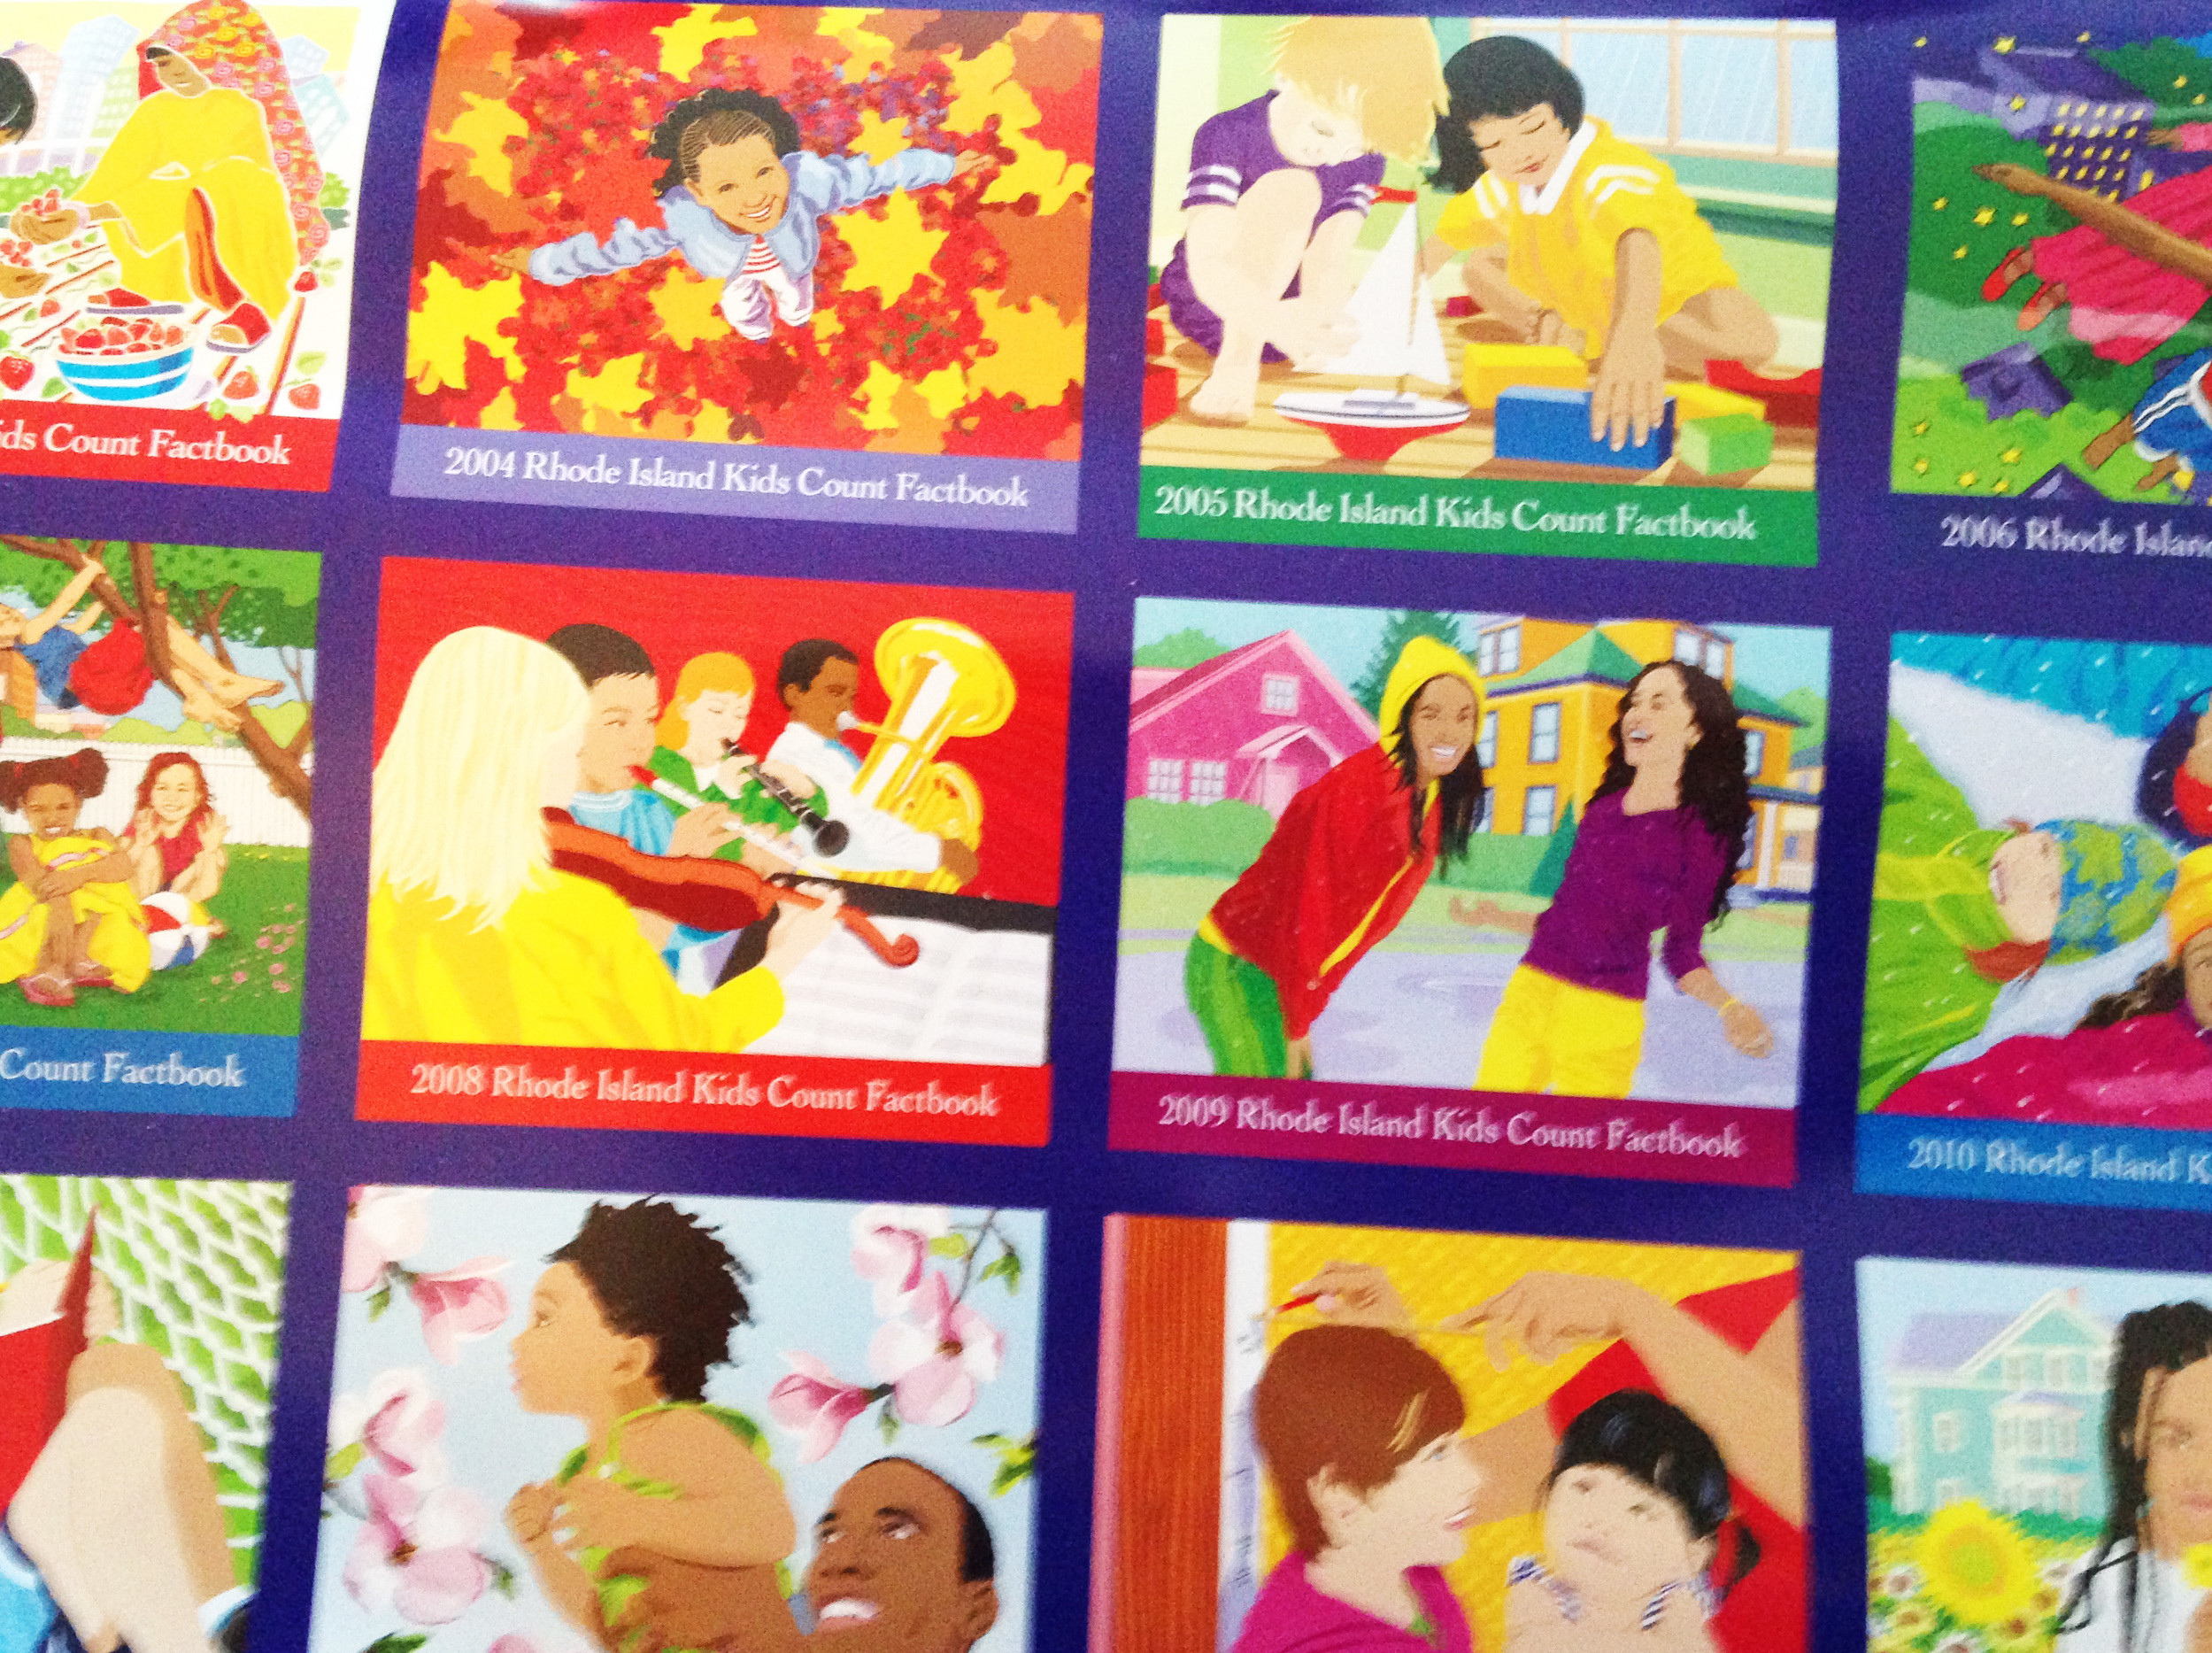 Images from a collage of covers of the first 20 Rhode Island Kids Count Factbooks published as a poster in 2014